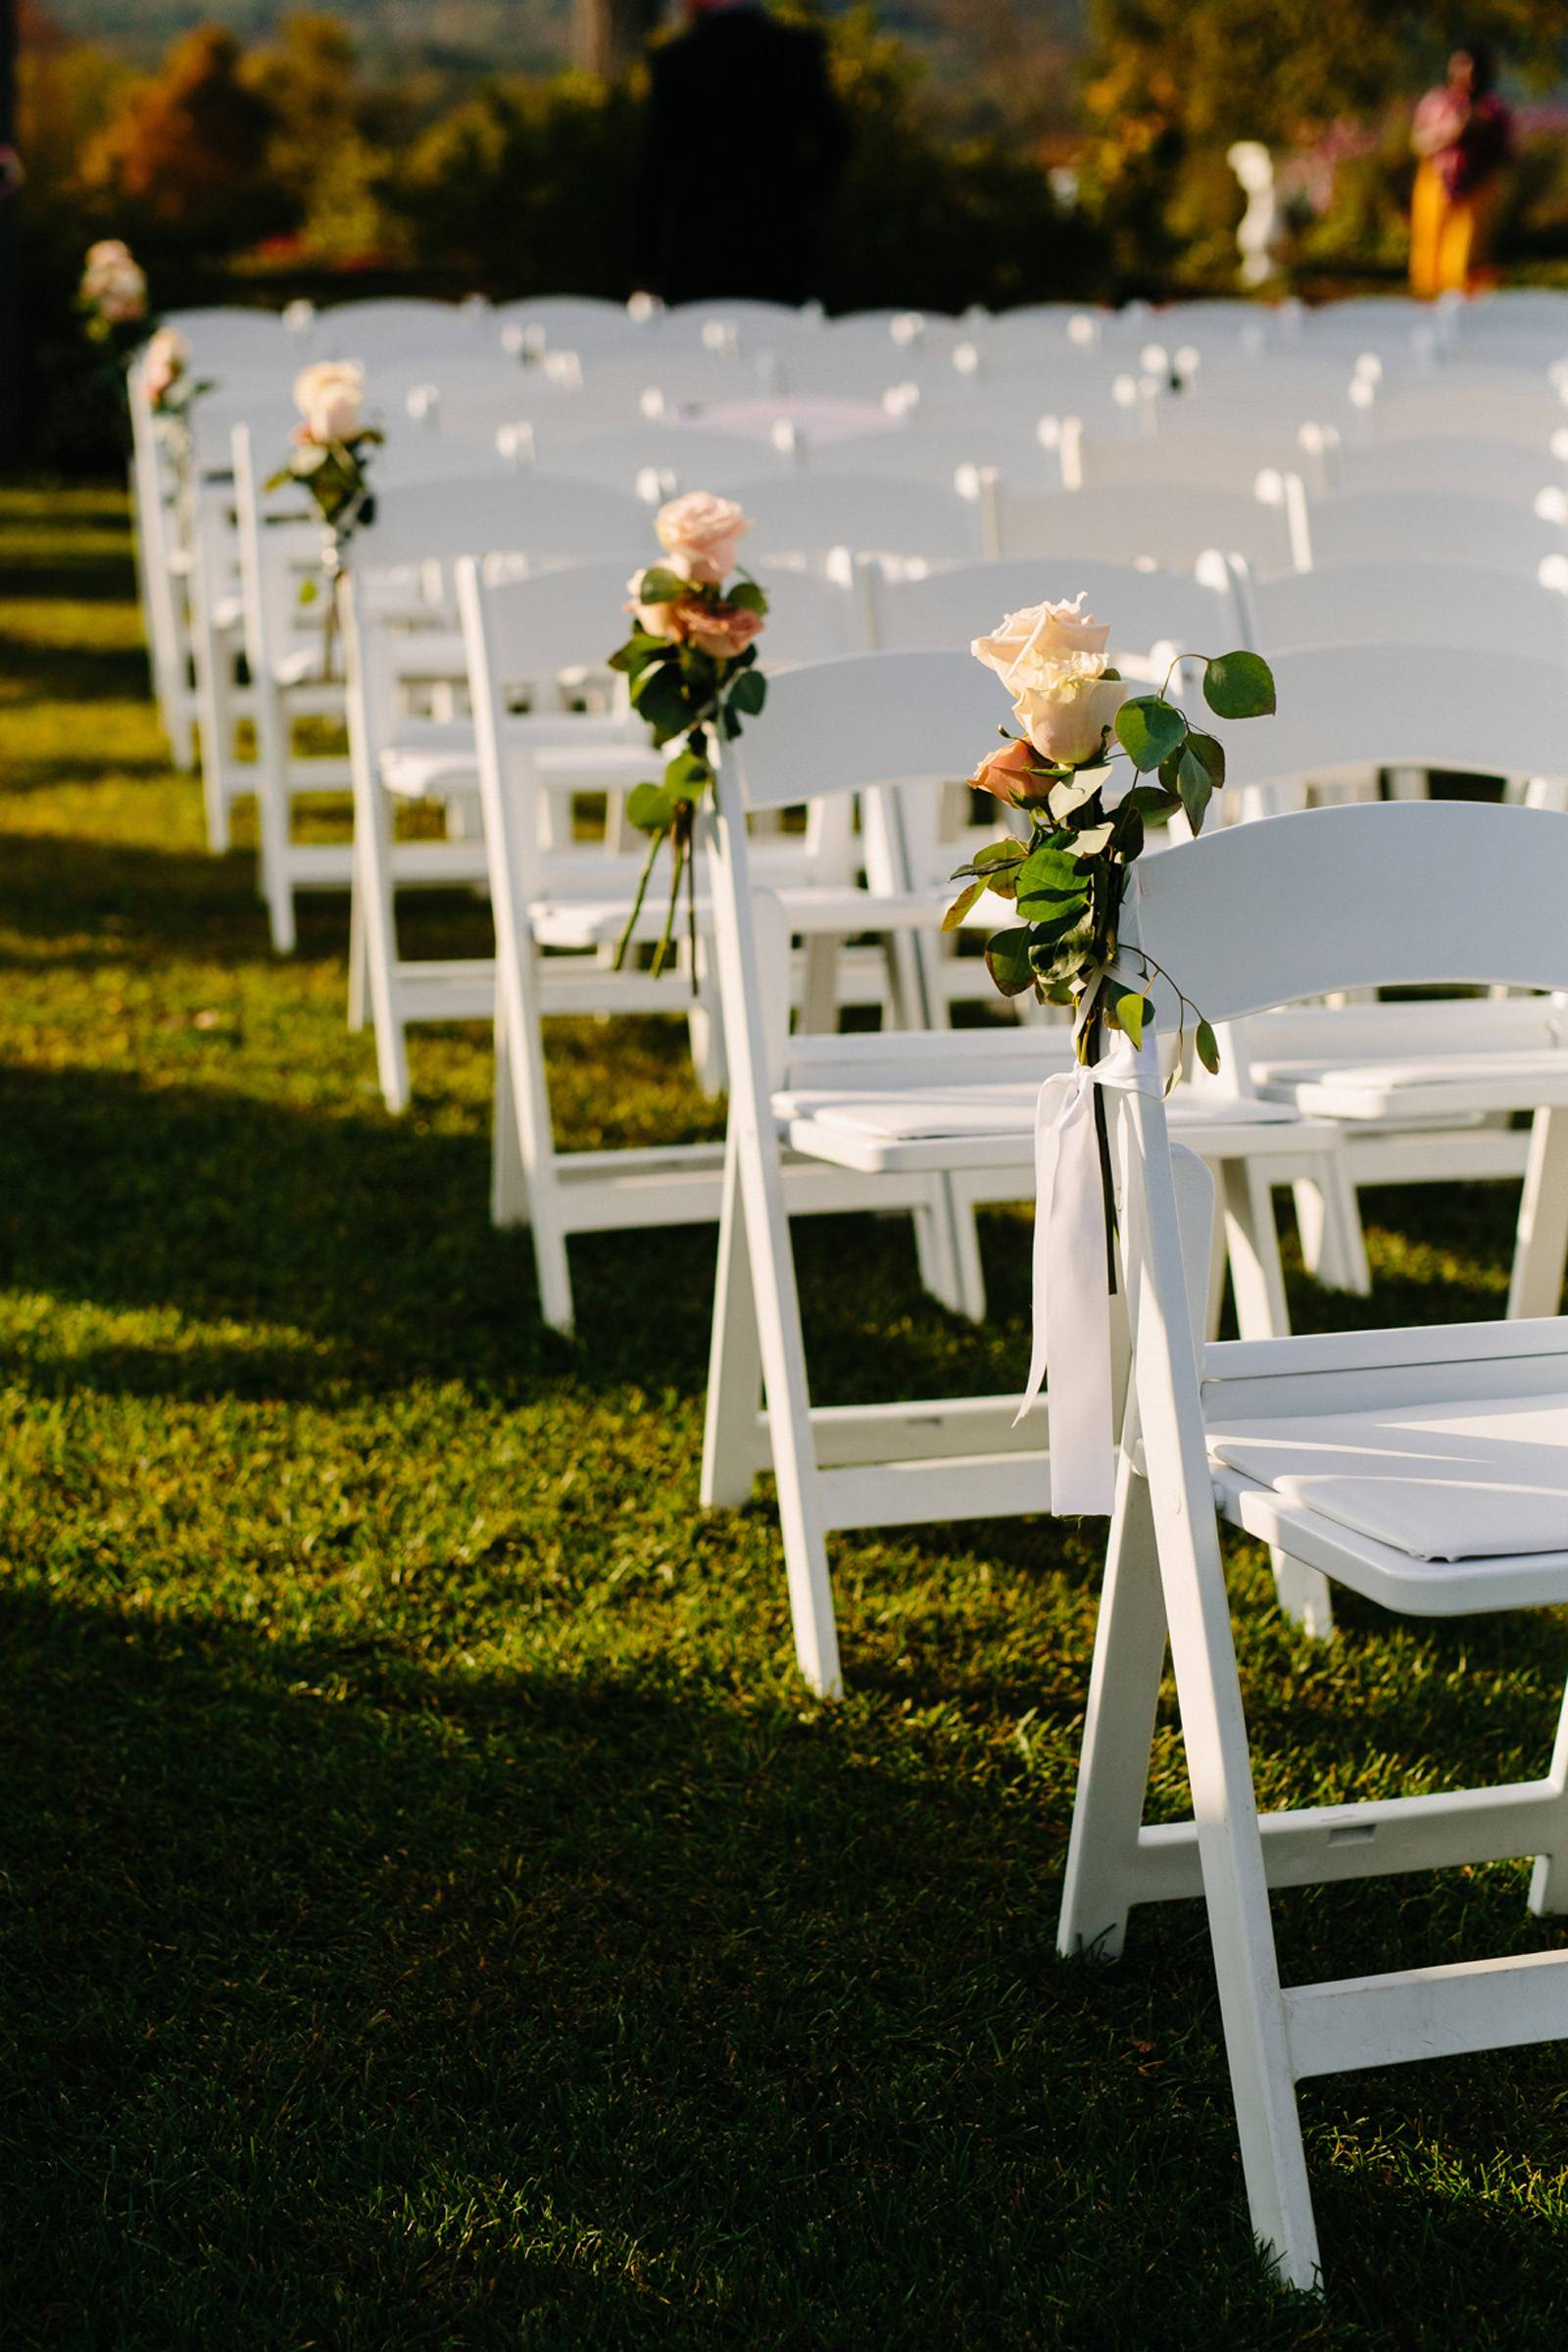 Roses tied onto aisle chairs for outdoor fall black tie wedding ceremony at Hildene